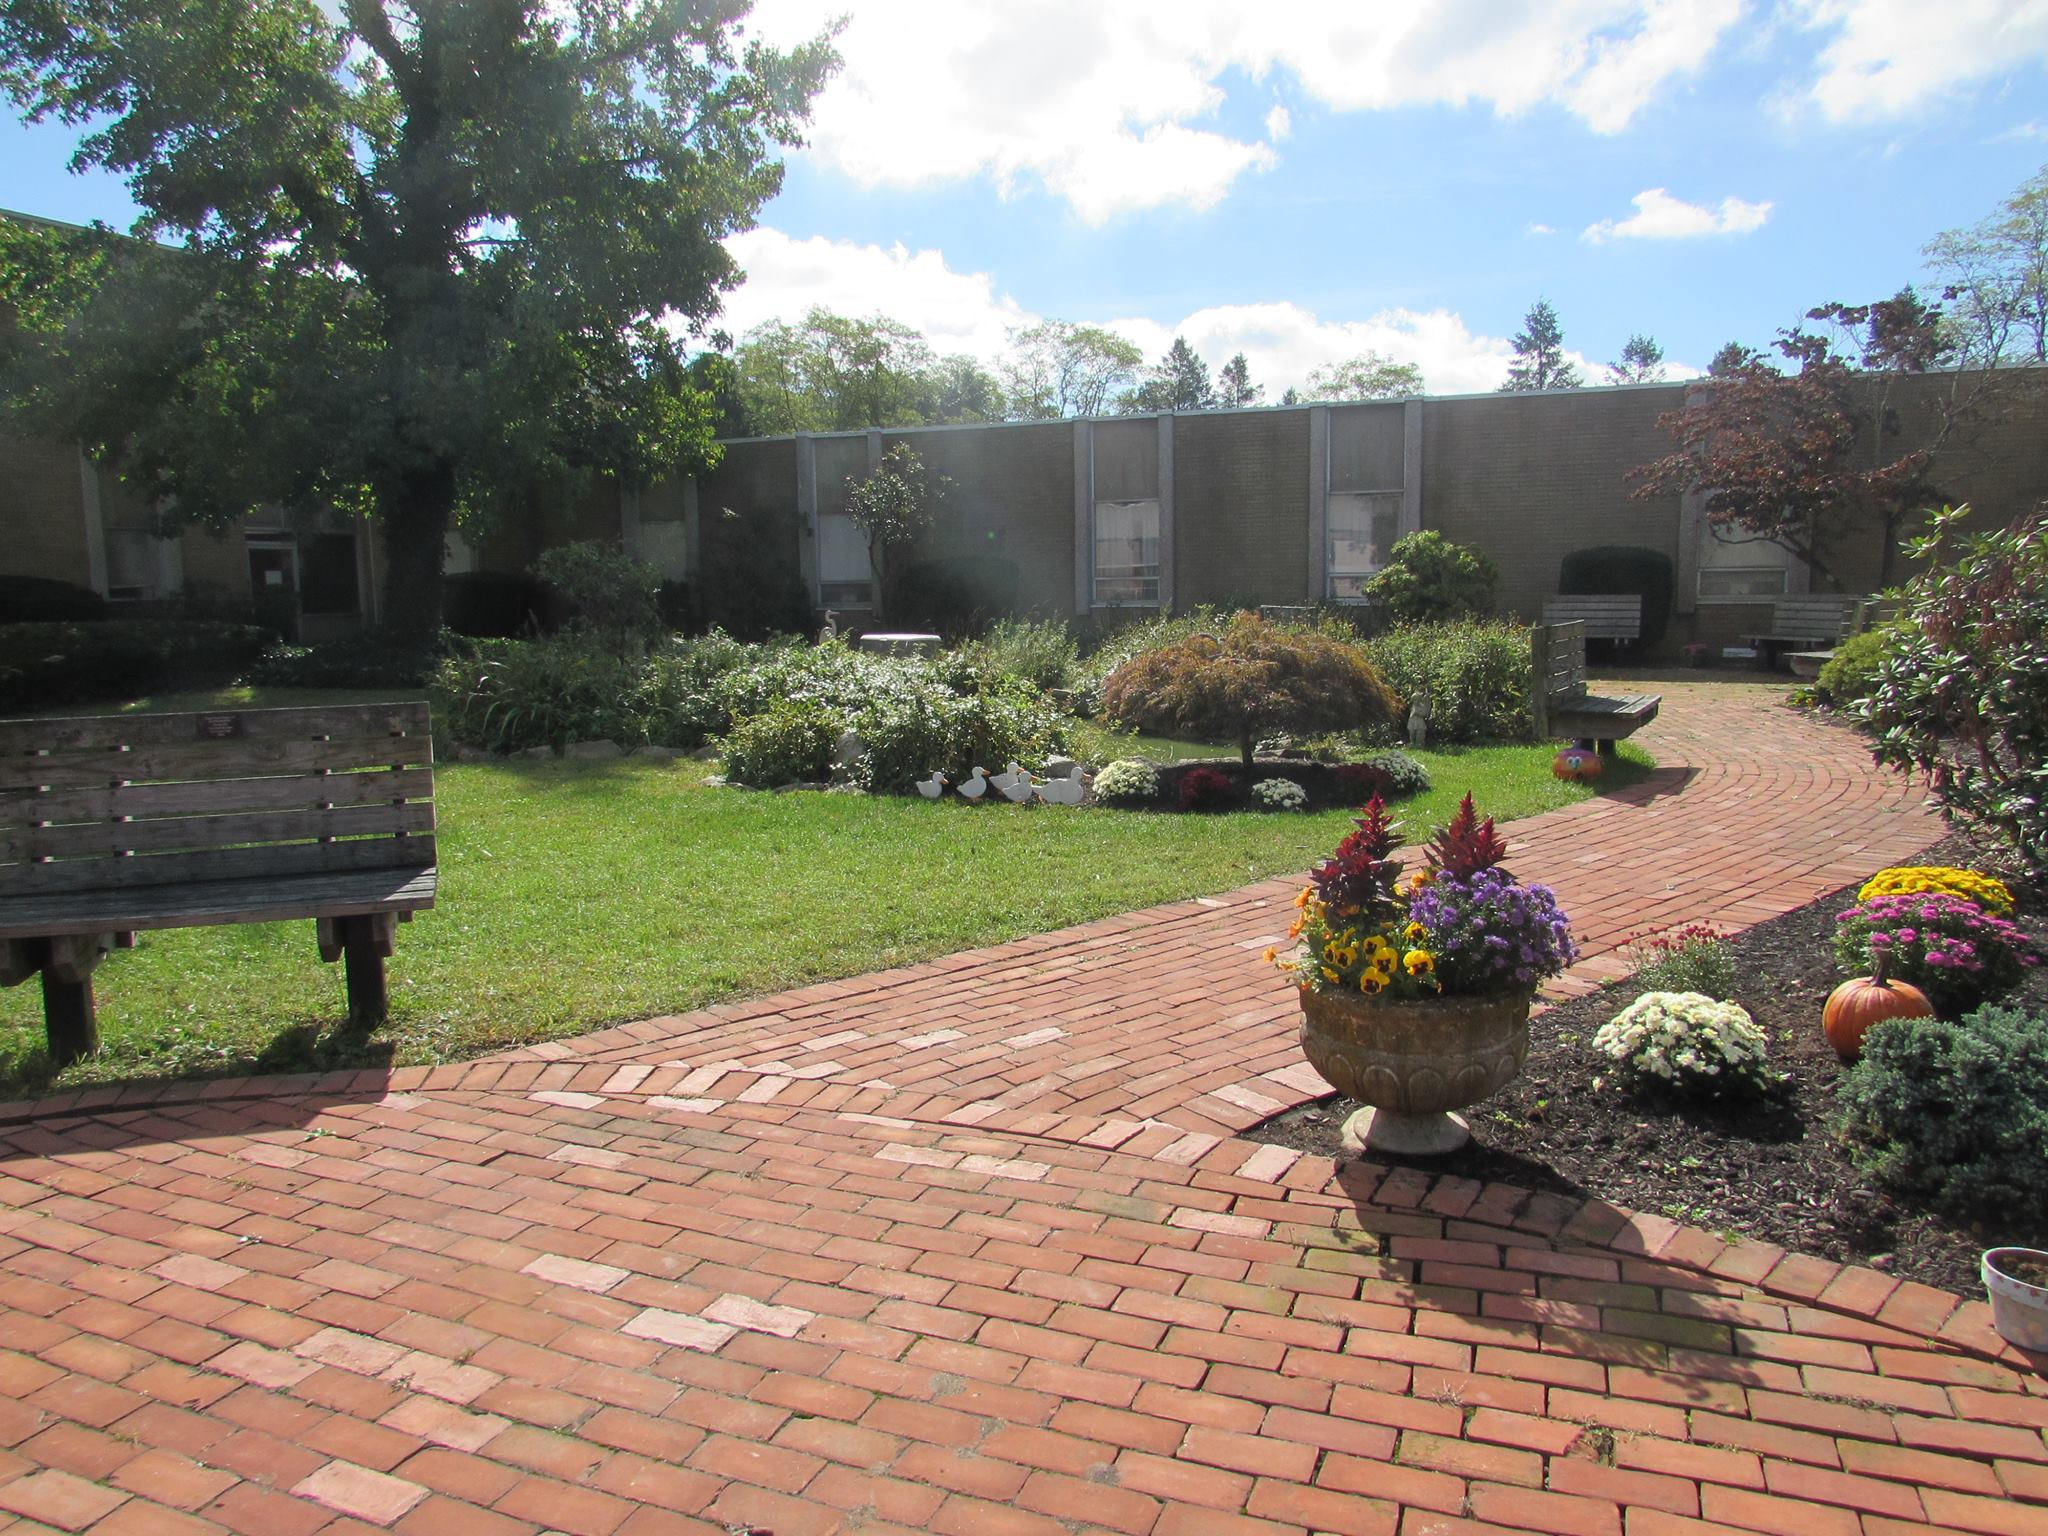 Woodhaven Center of Care $12,800,000 BR - 232/223(f) Port Jefferson Station, NY 181 beds May 2019